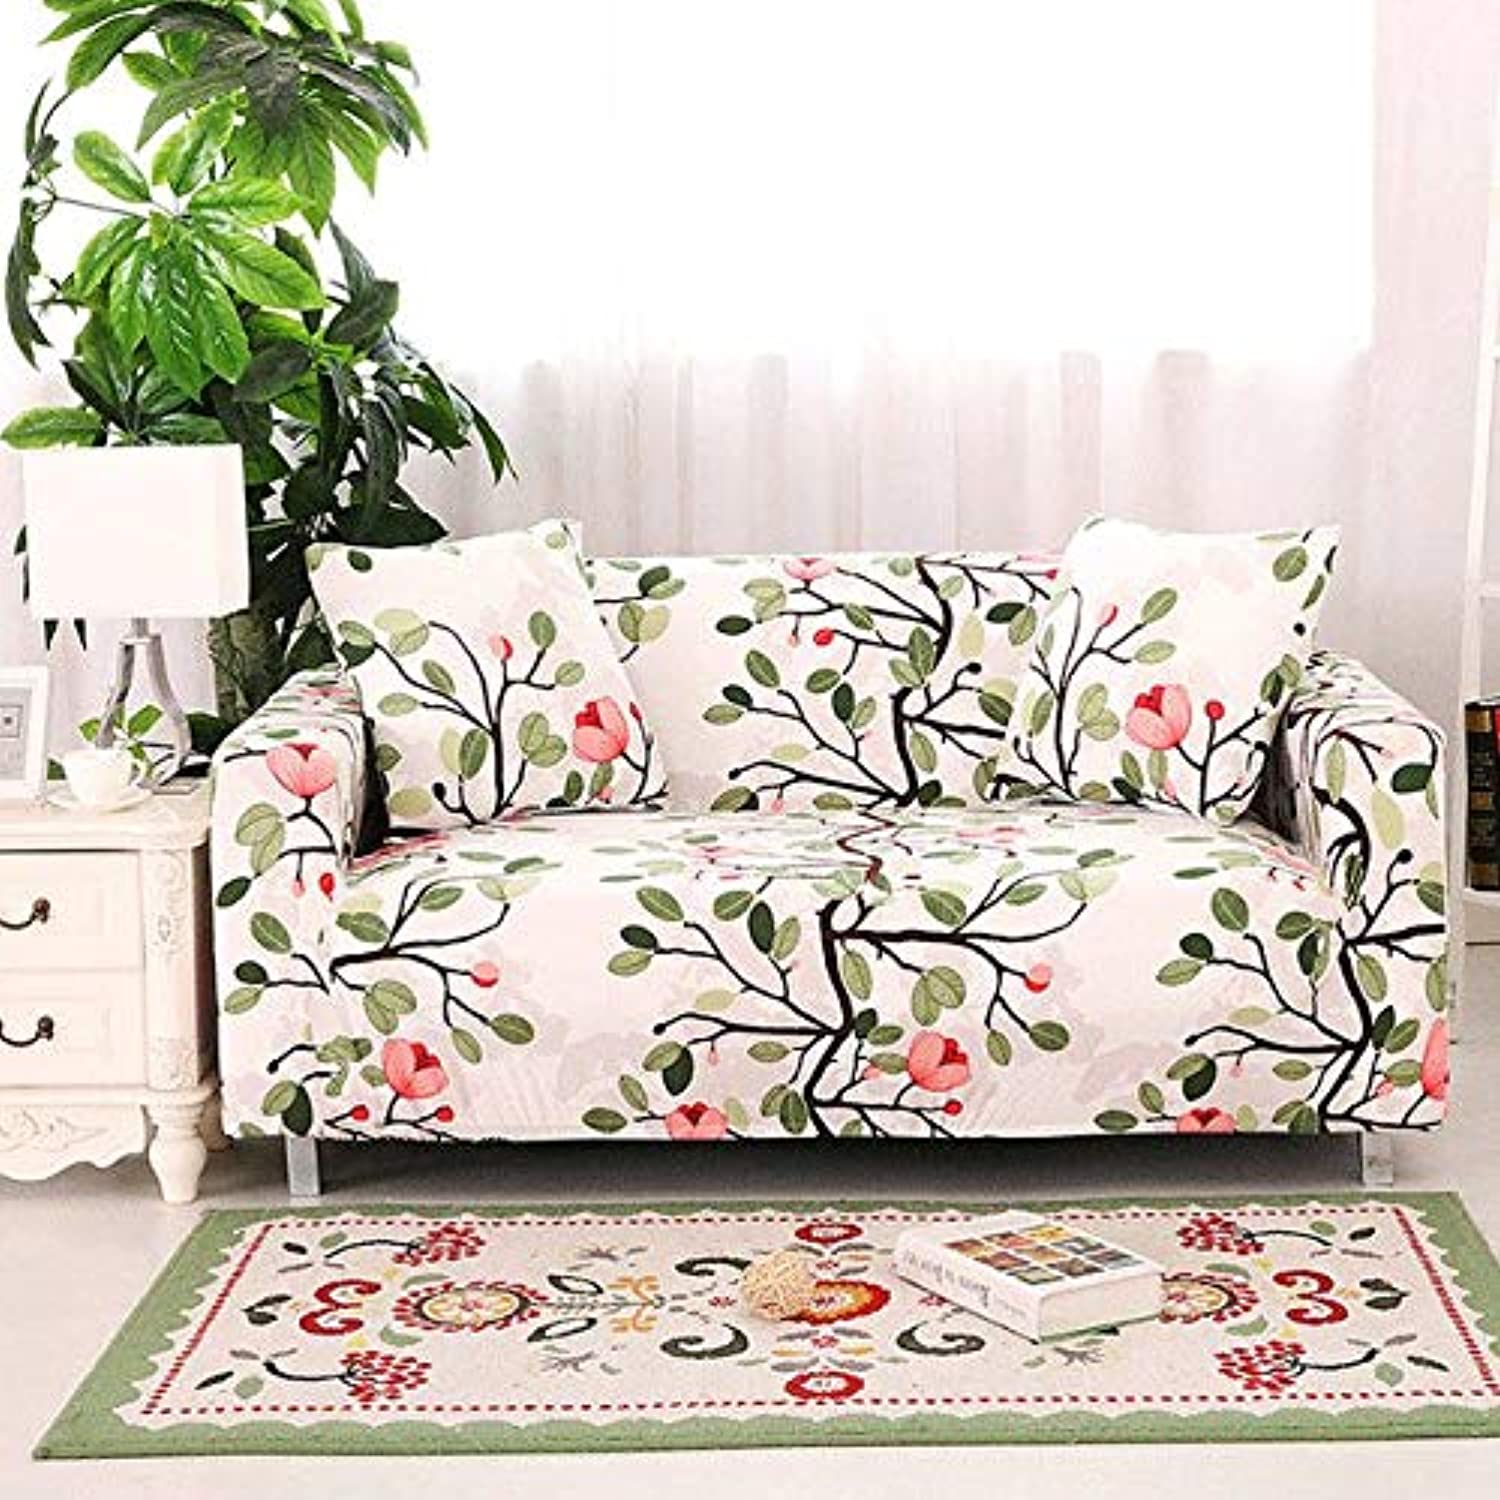 Stretch Elastic Sofa Cover Cotton cubre Sofa Towel Slip-Resistant Sofa Covers for Living Room funda Sofa   colour10, Single-Seater